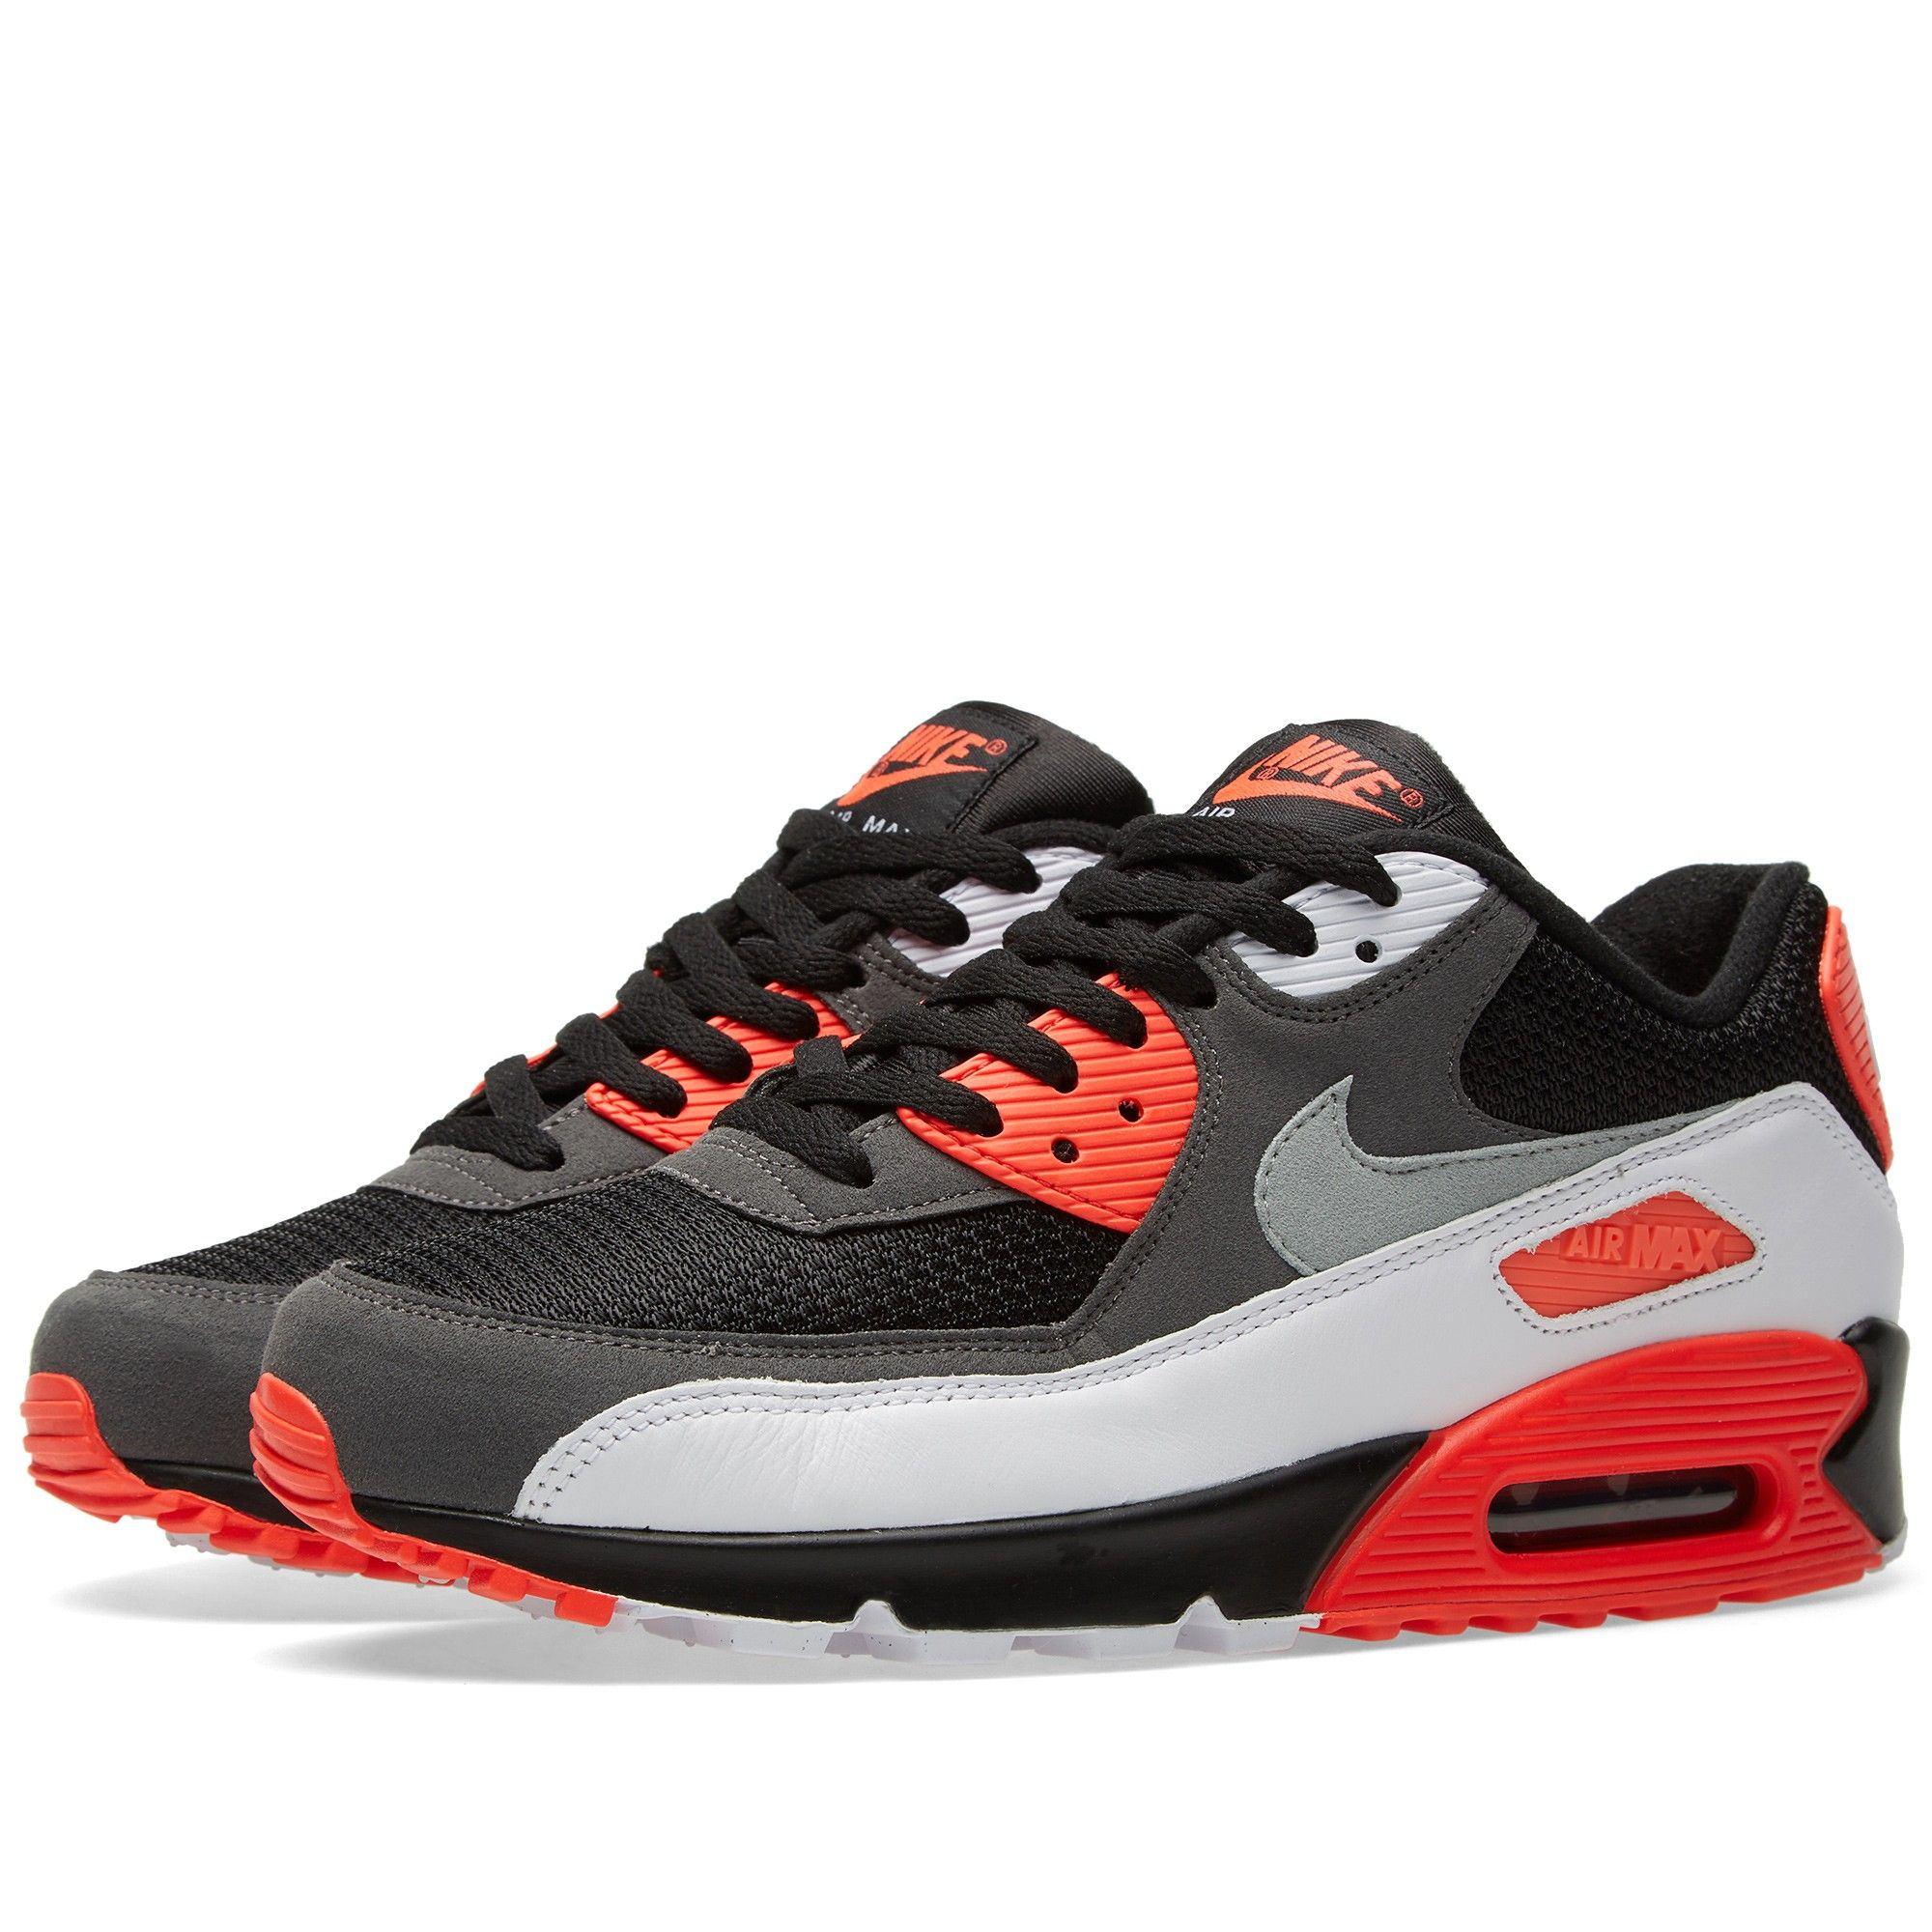 Nike Air Max 90 OG 'Reverse Infrared' (Black, Neutral & Dark